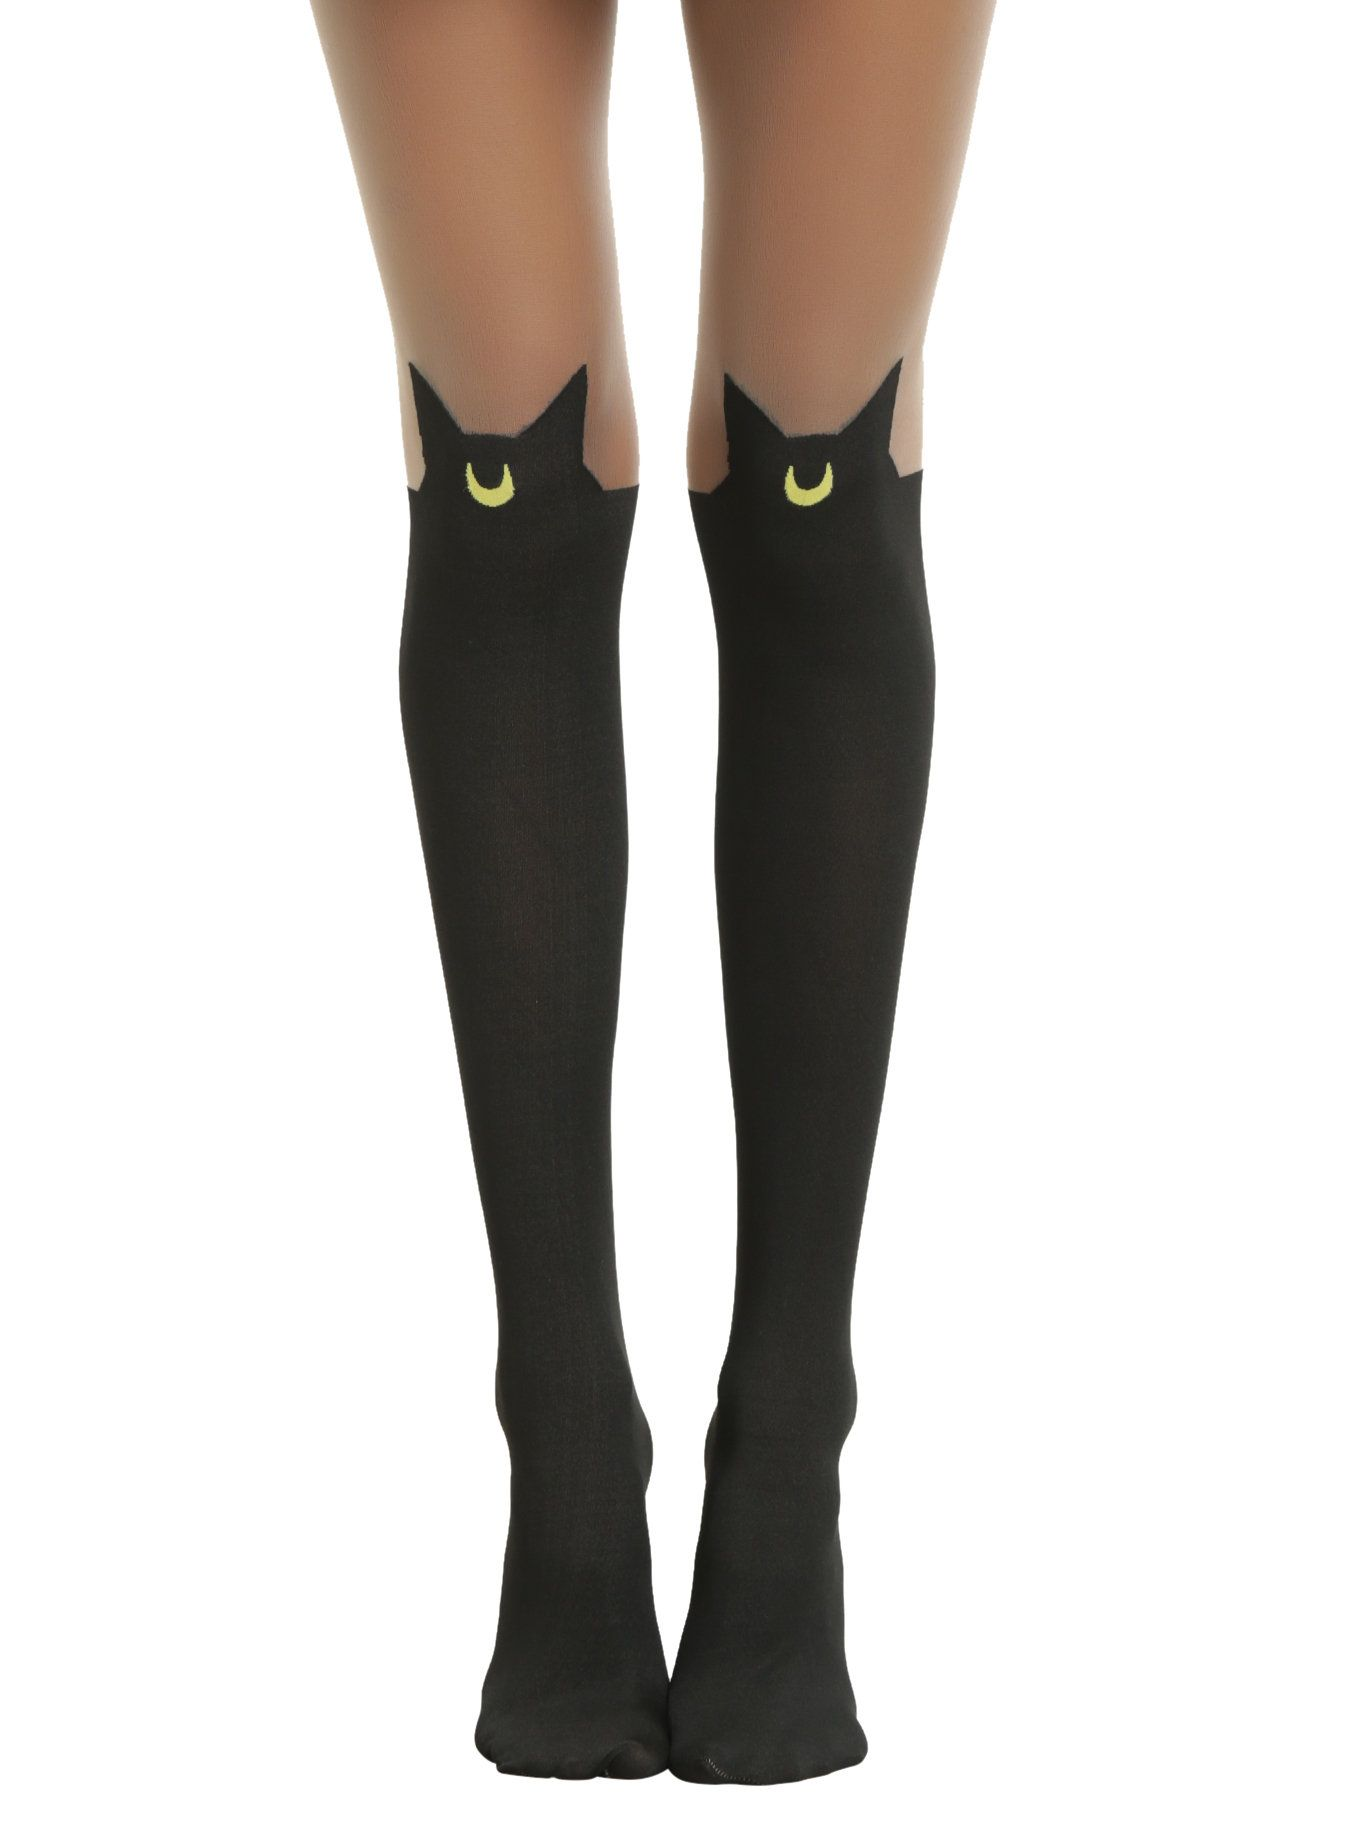 307aae0e24b  p You don t want just any black cat on your tights. Only Luna will do! Black  faux thigh high tights from Sailor Moon with a Luna silhouette design.